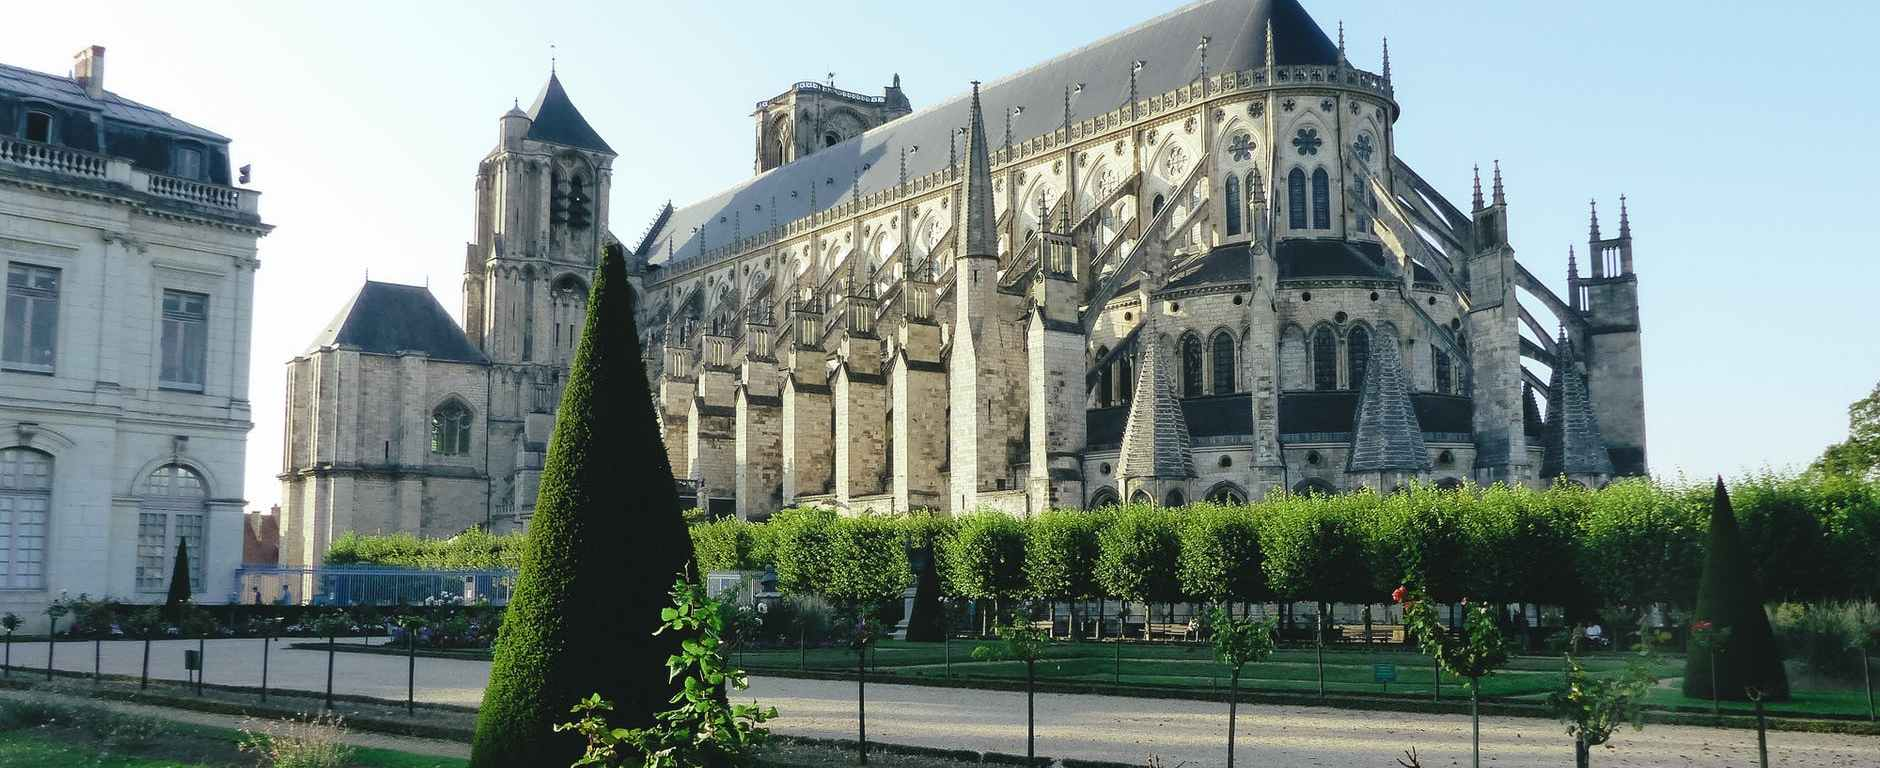 old catholic gothic cathedral among green plants of park